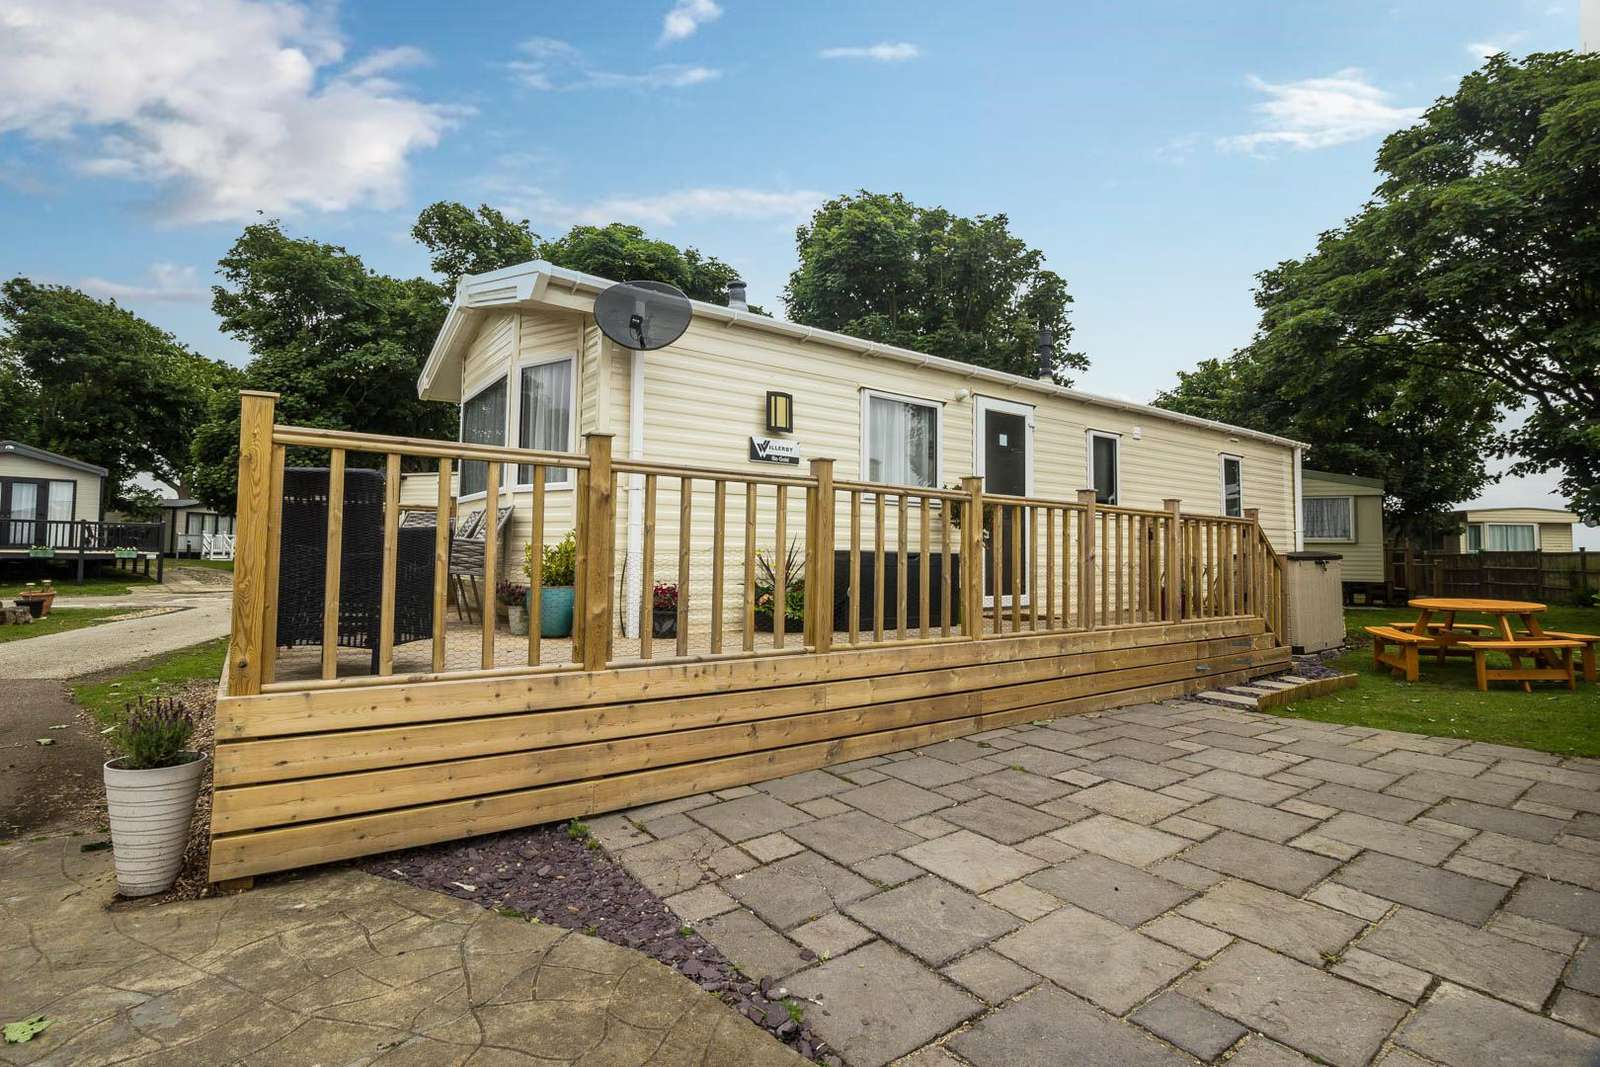 32017AS – Azure Seas, 2 bed, 6 berth caravan with decking and part sea view. Diamond rated. - property